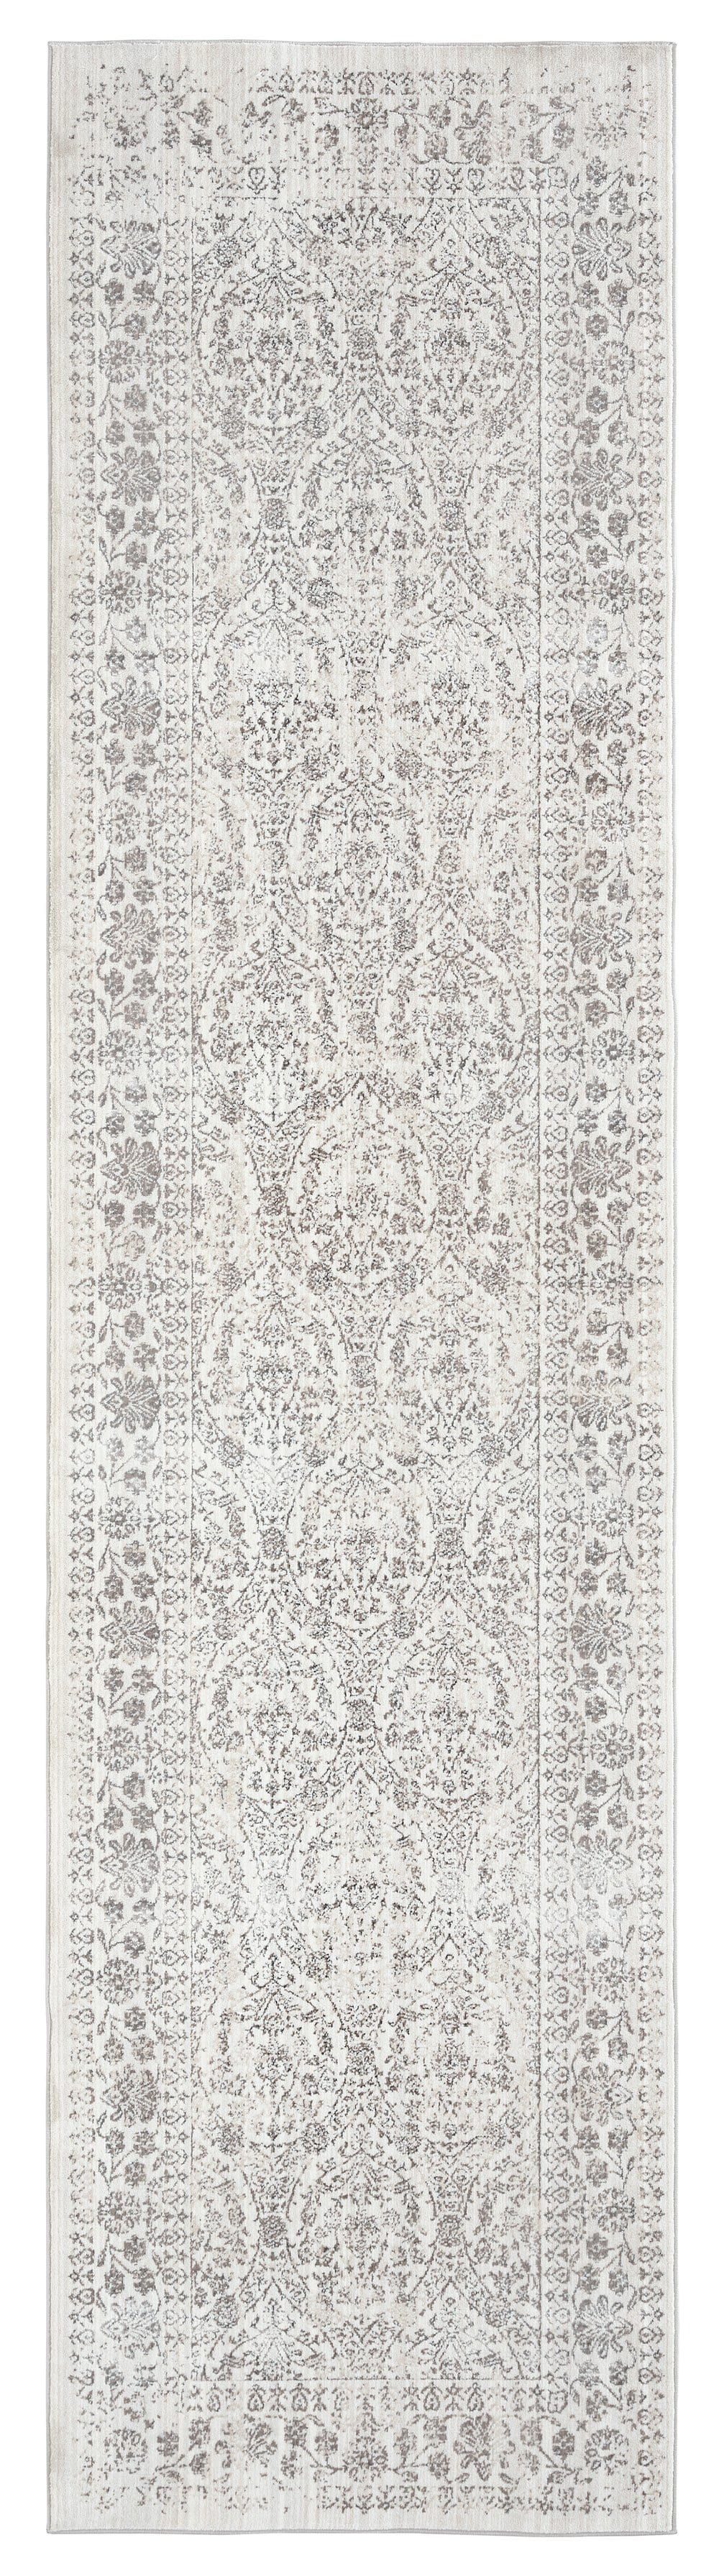 Simran Cream Brown and Silver Traditional Floral Runner Rug